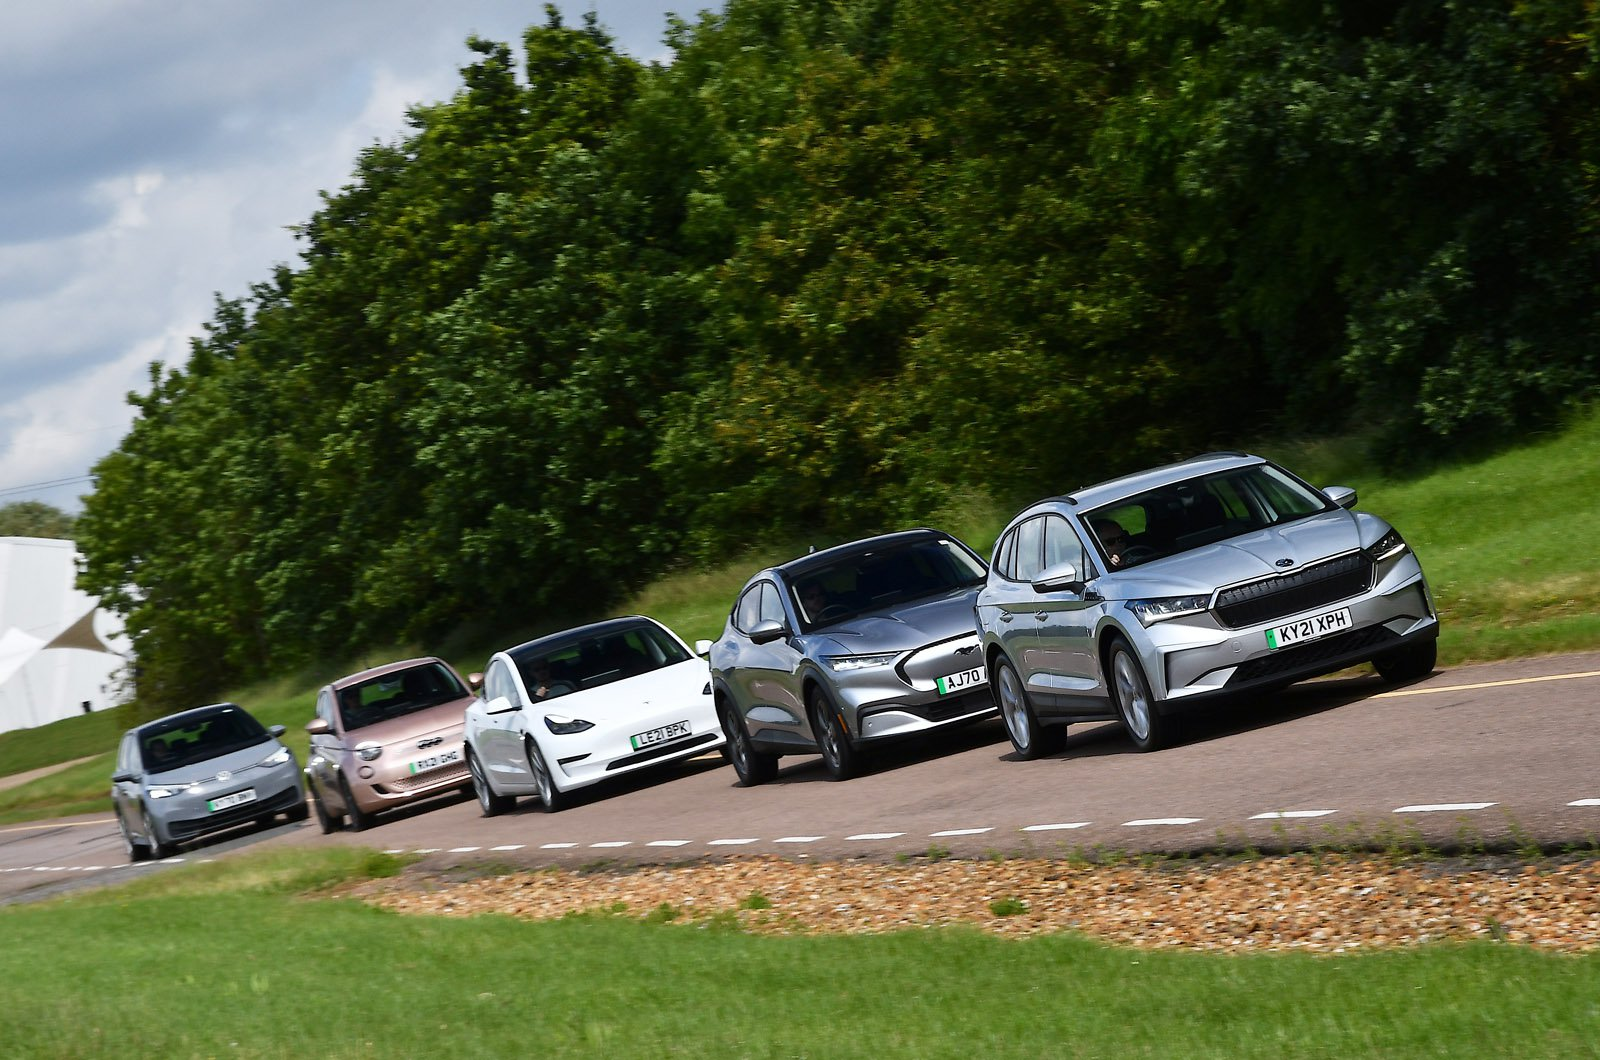 Electric car range test - cars in formation